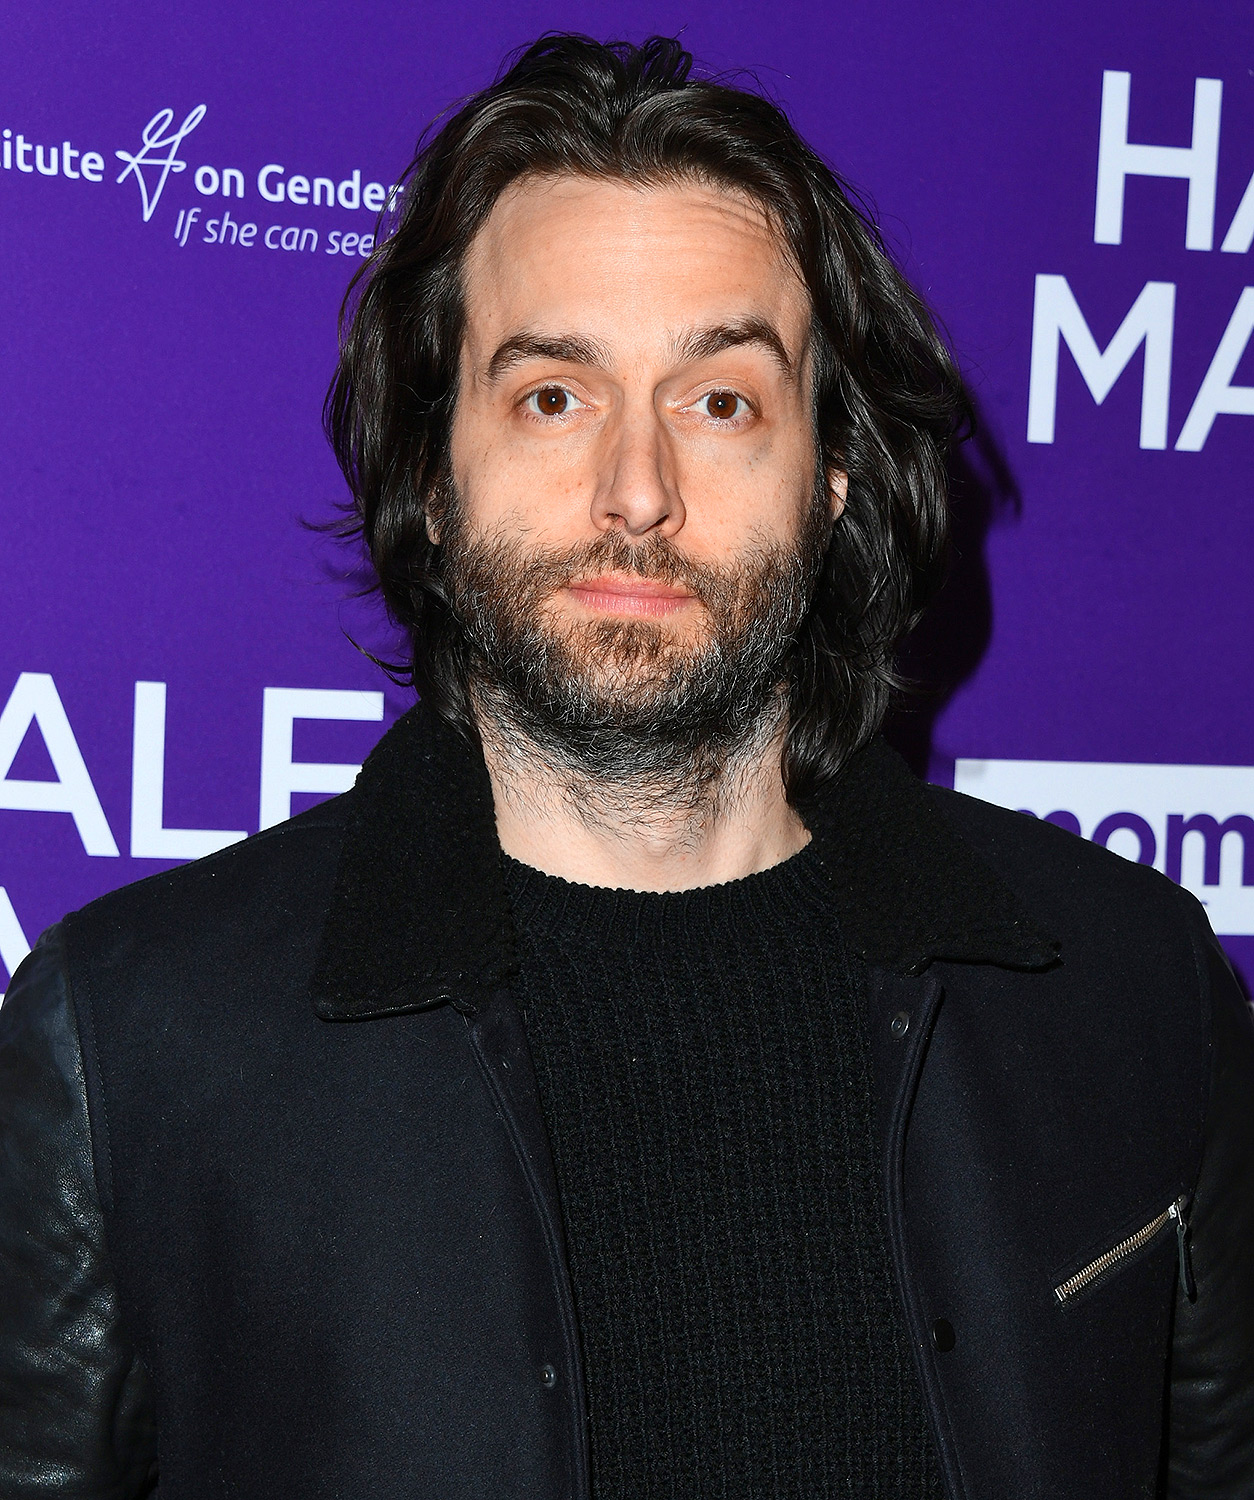 Comedian Chris D'Elia